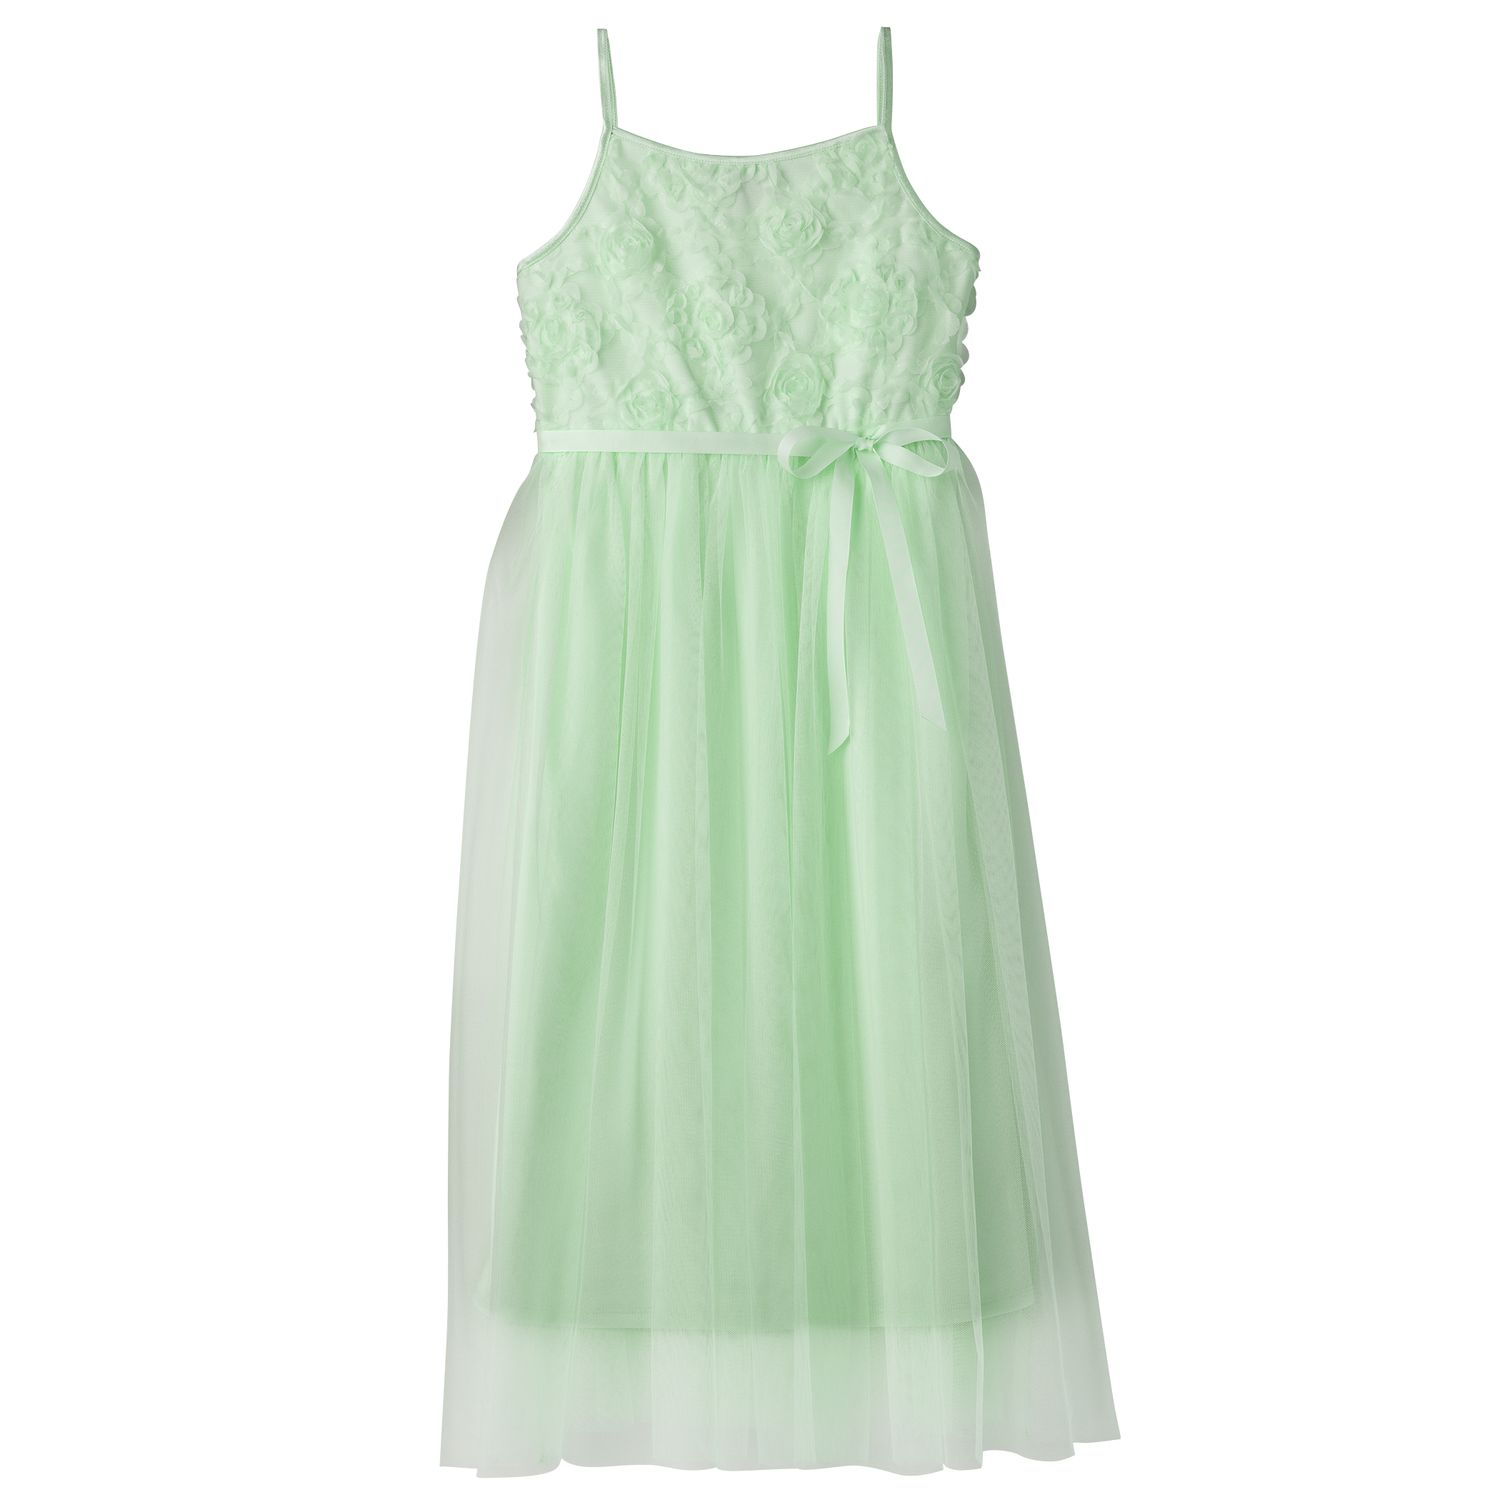 Maxi Dresses for Girls Size 7-16